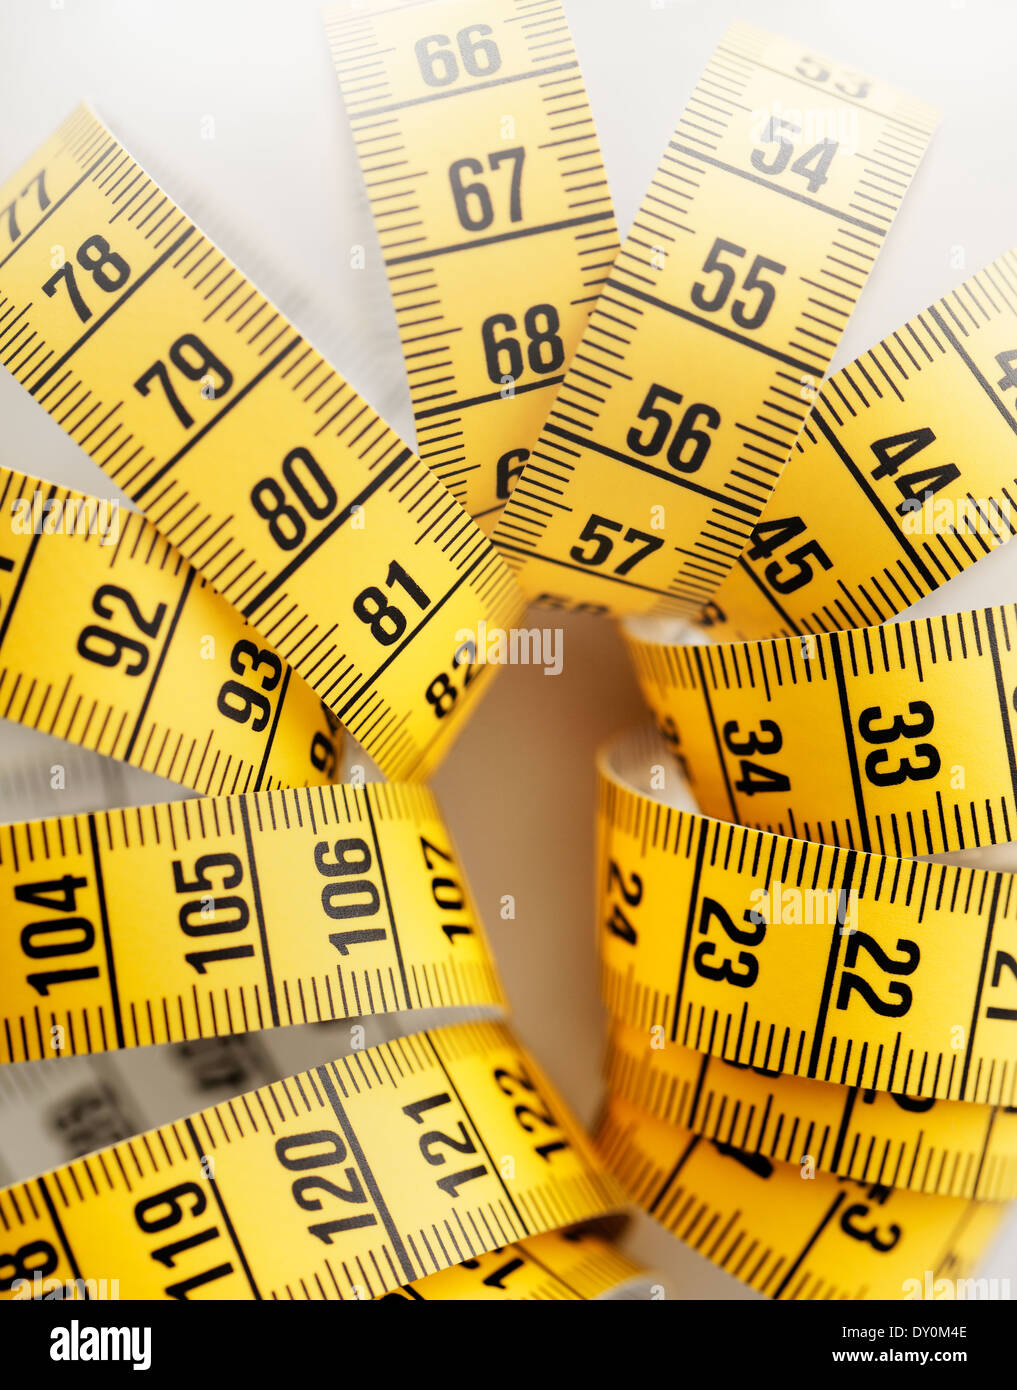 Yellow metric tape measure. Short depth-of-field. - Stock Image